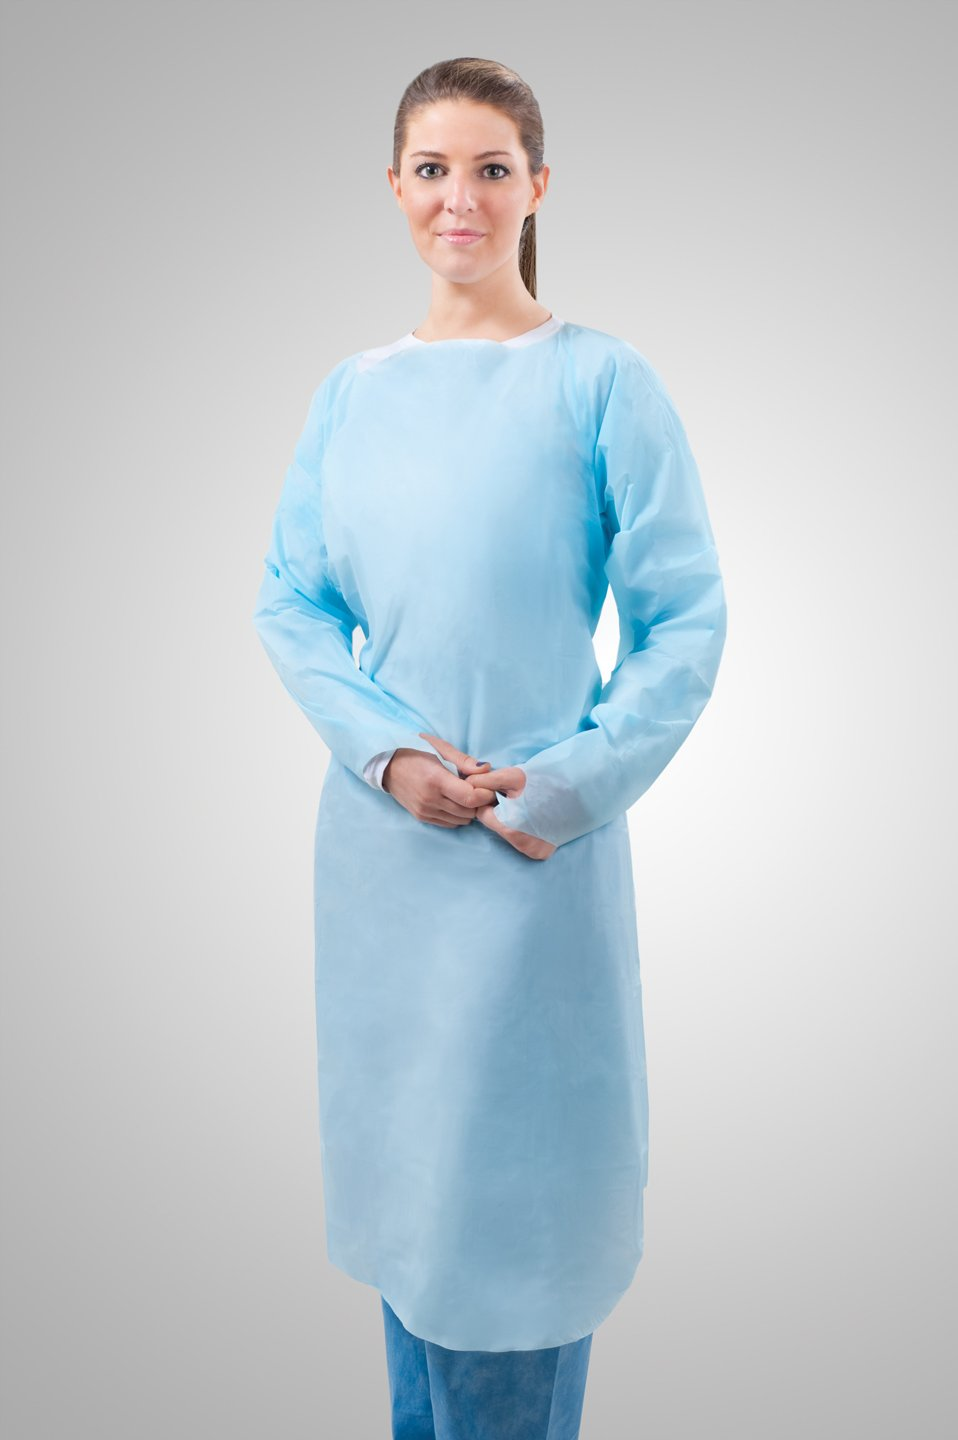 Tronex-Over-the-Head Gown, Medical Grade, Fluid-Impervious, Thumb Hooks, Soft Blue, Unisize (Box of 15)